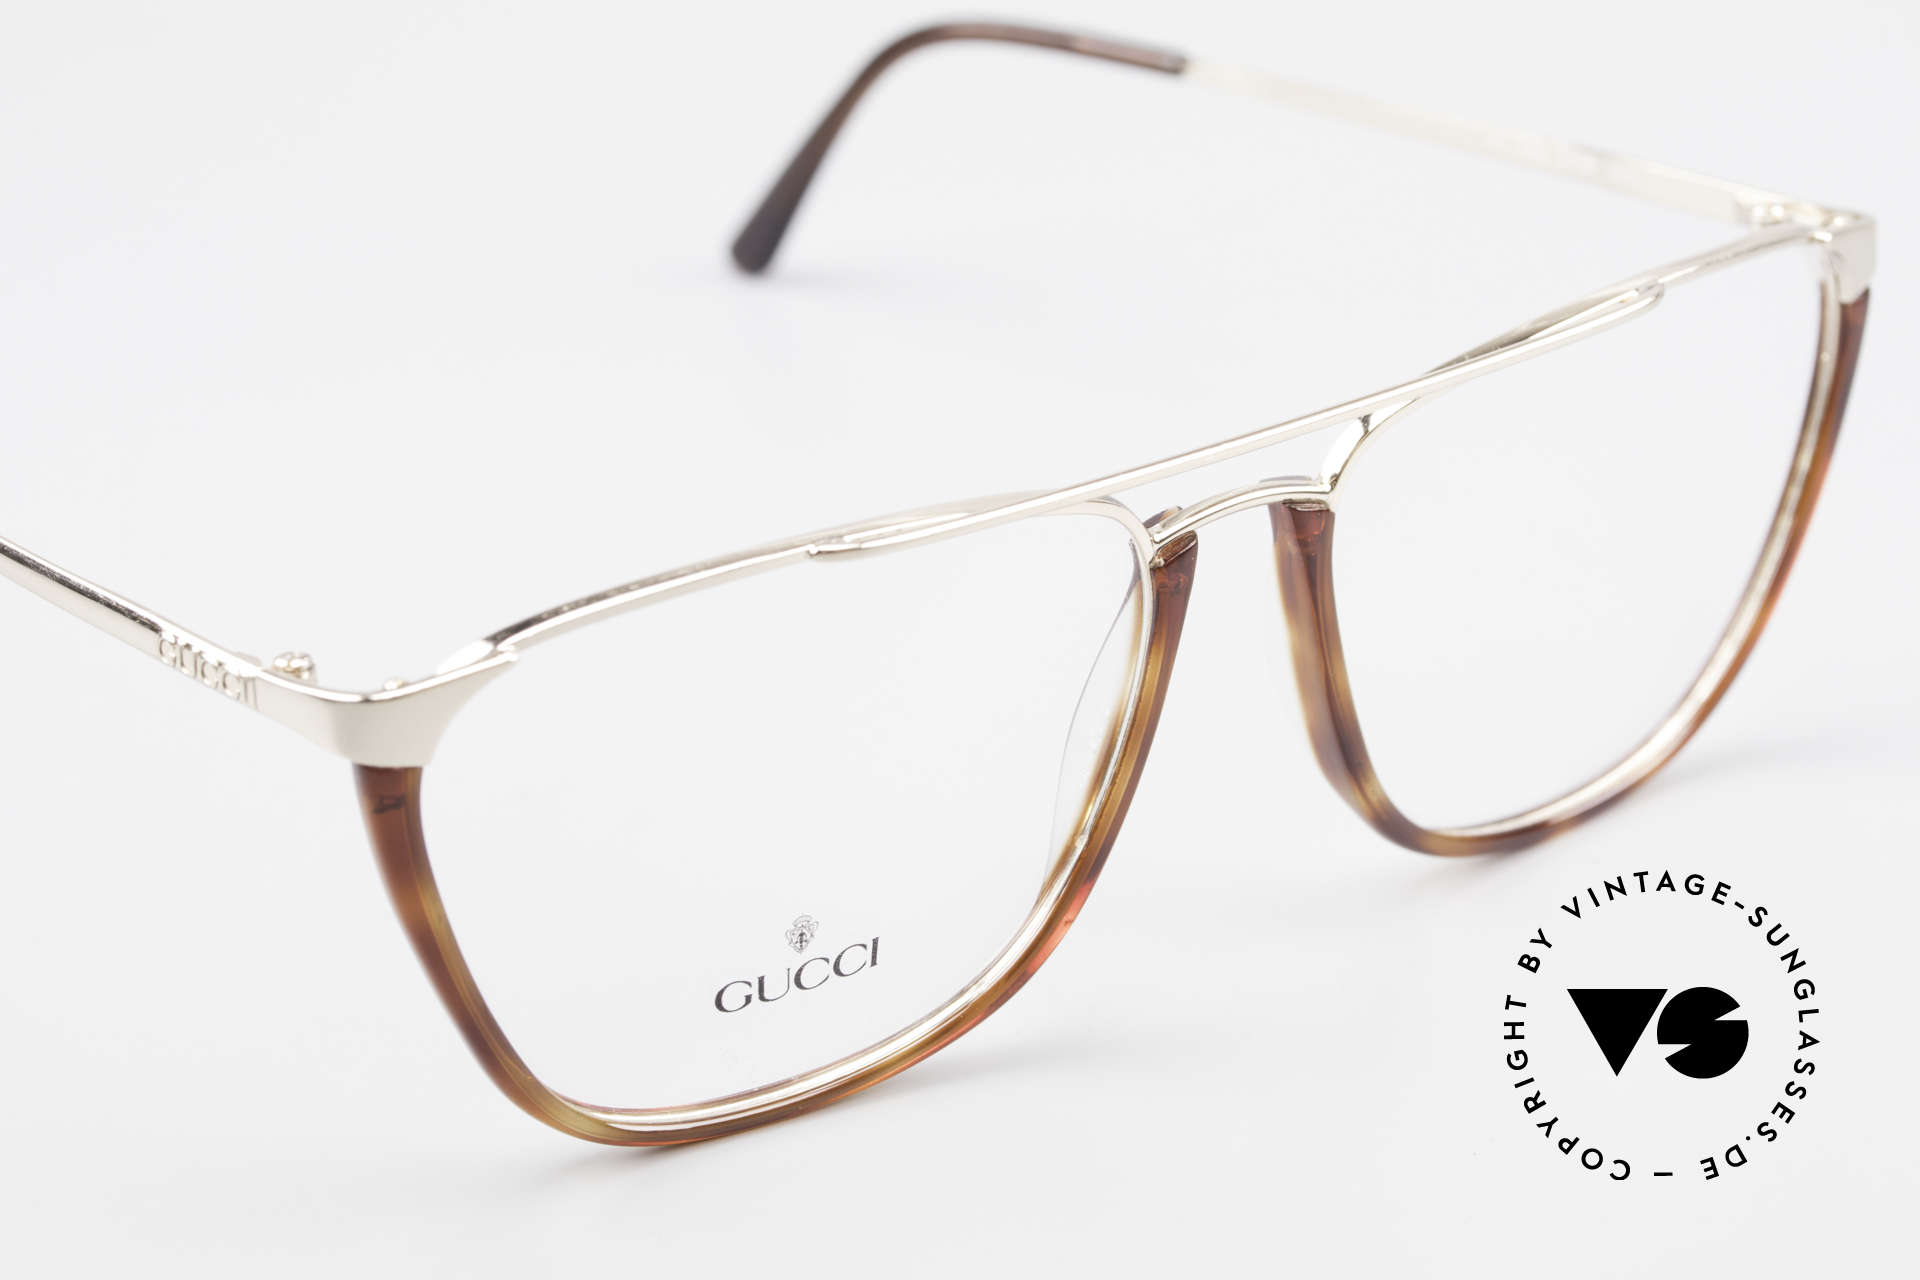 Gucci 1308 90's Designer Eyeglass-Frame, never worn (like all our vintage Gucci specs), Made for Men and Women